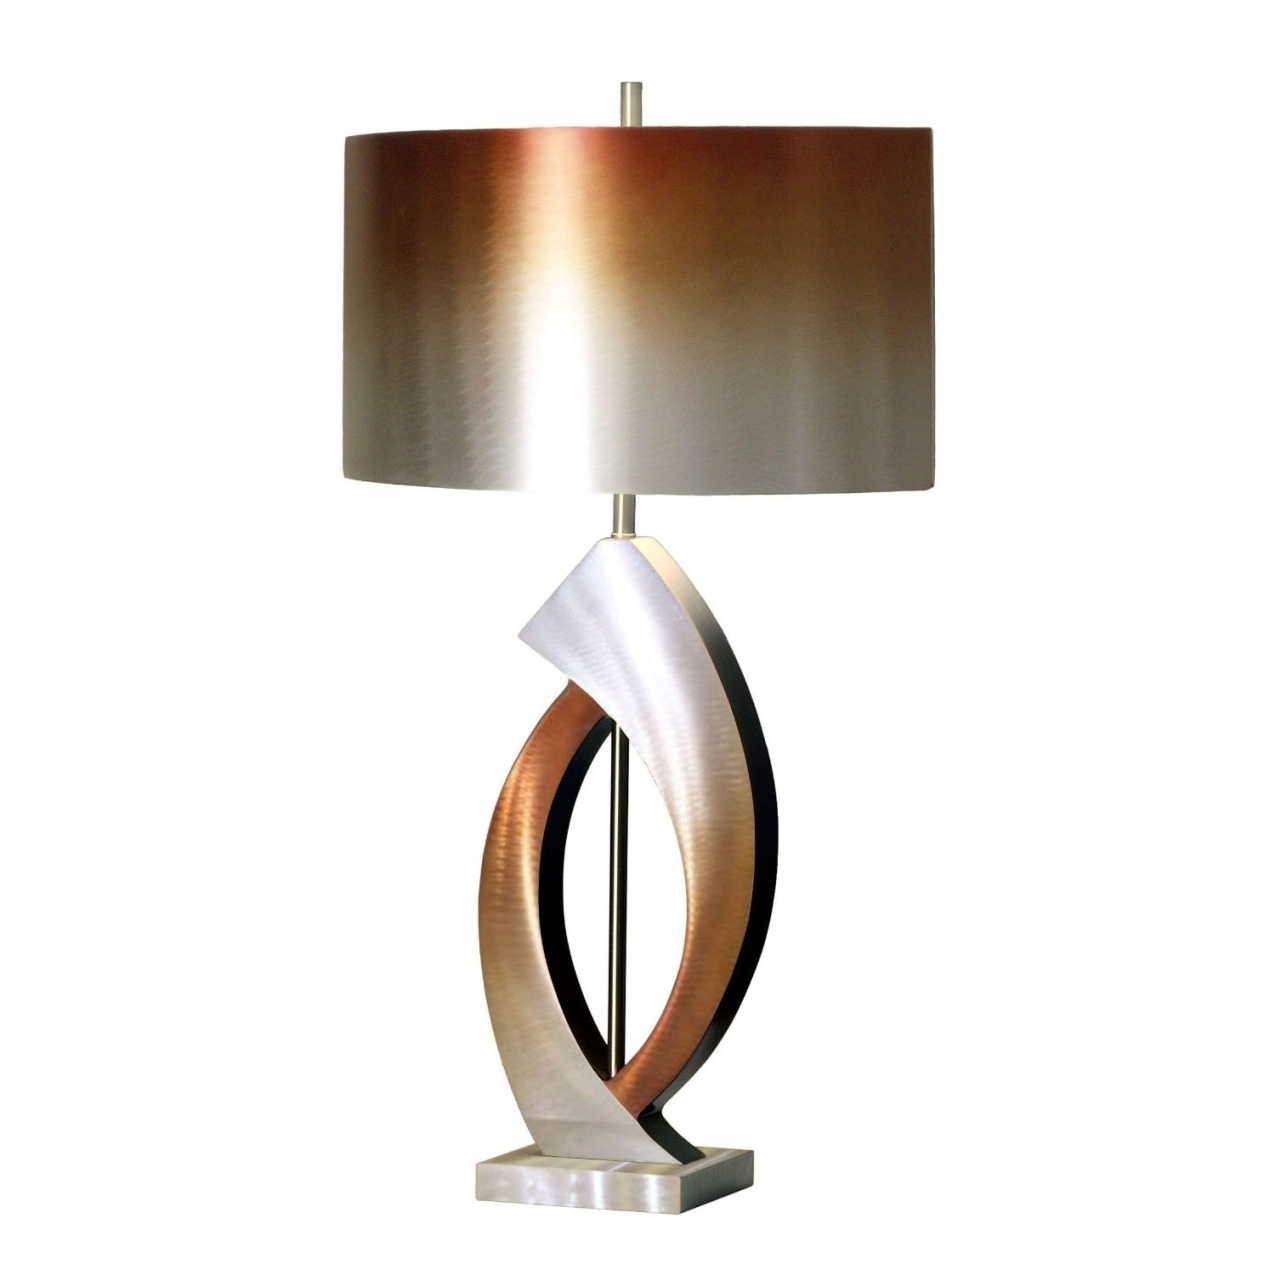 2018 Happy Bronze Table Lamps For Living Room 34 Awesome Creative Pertaining To Bronze Living Room Table Lamps (View 4 of 15)